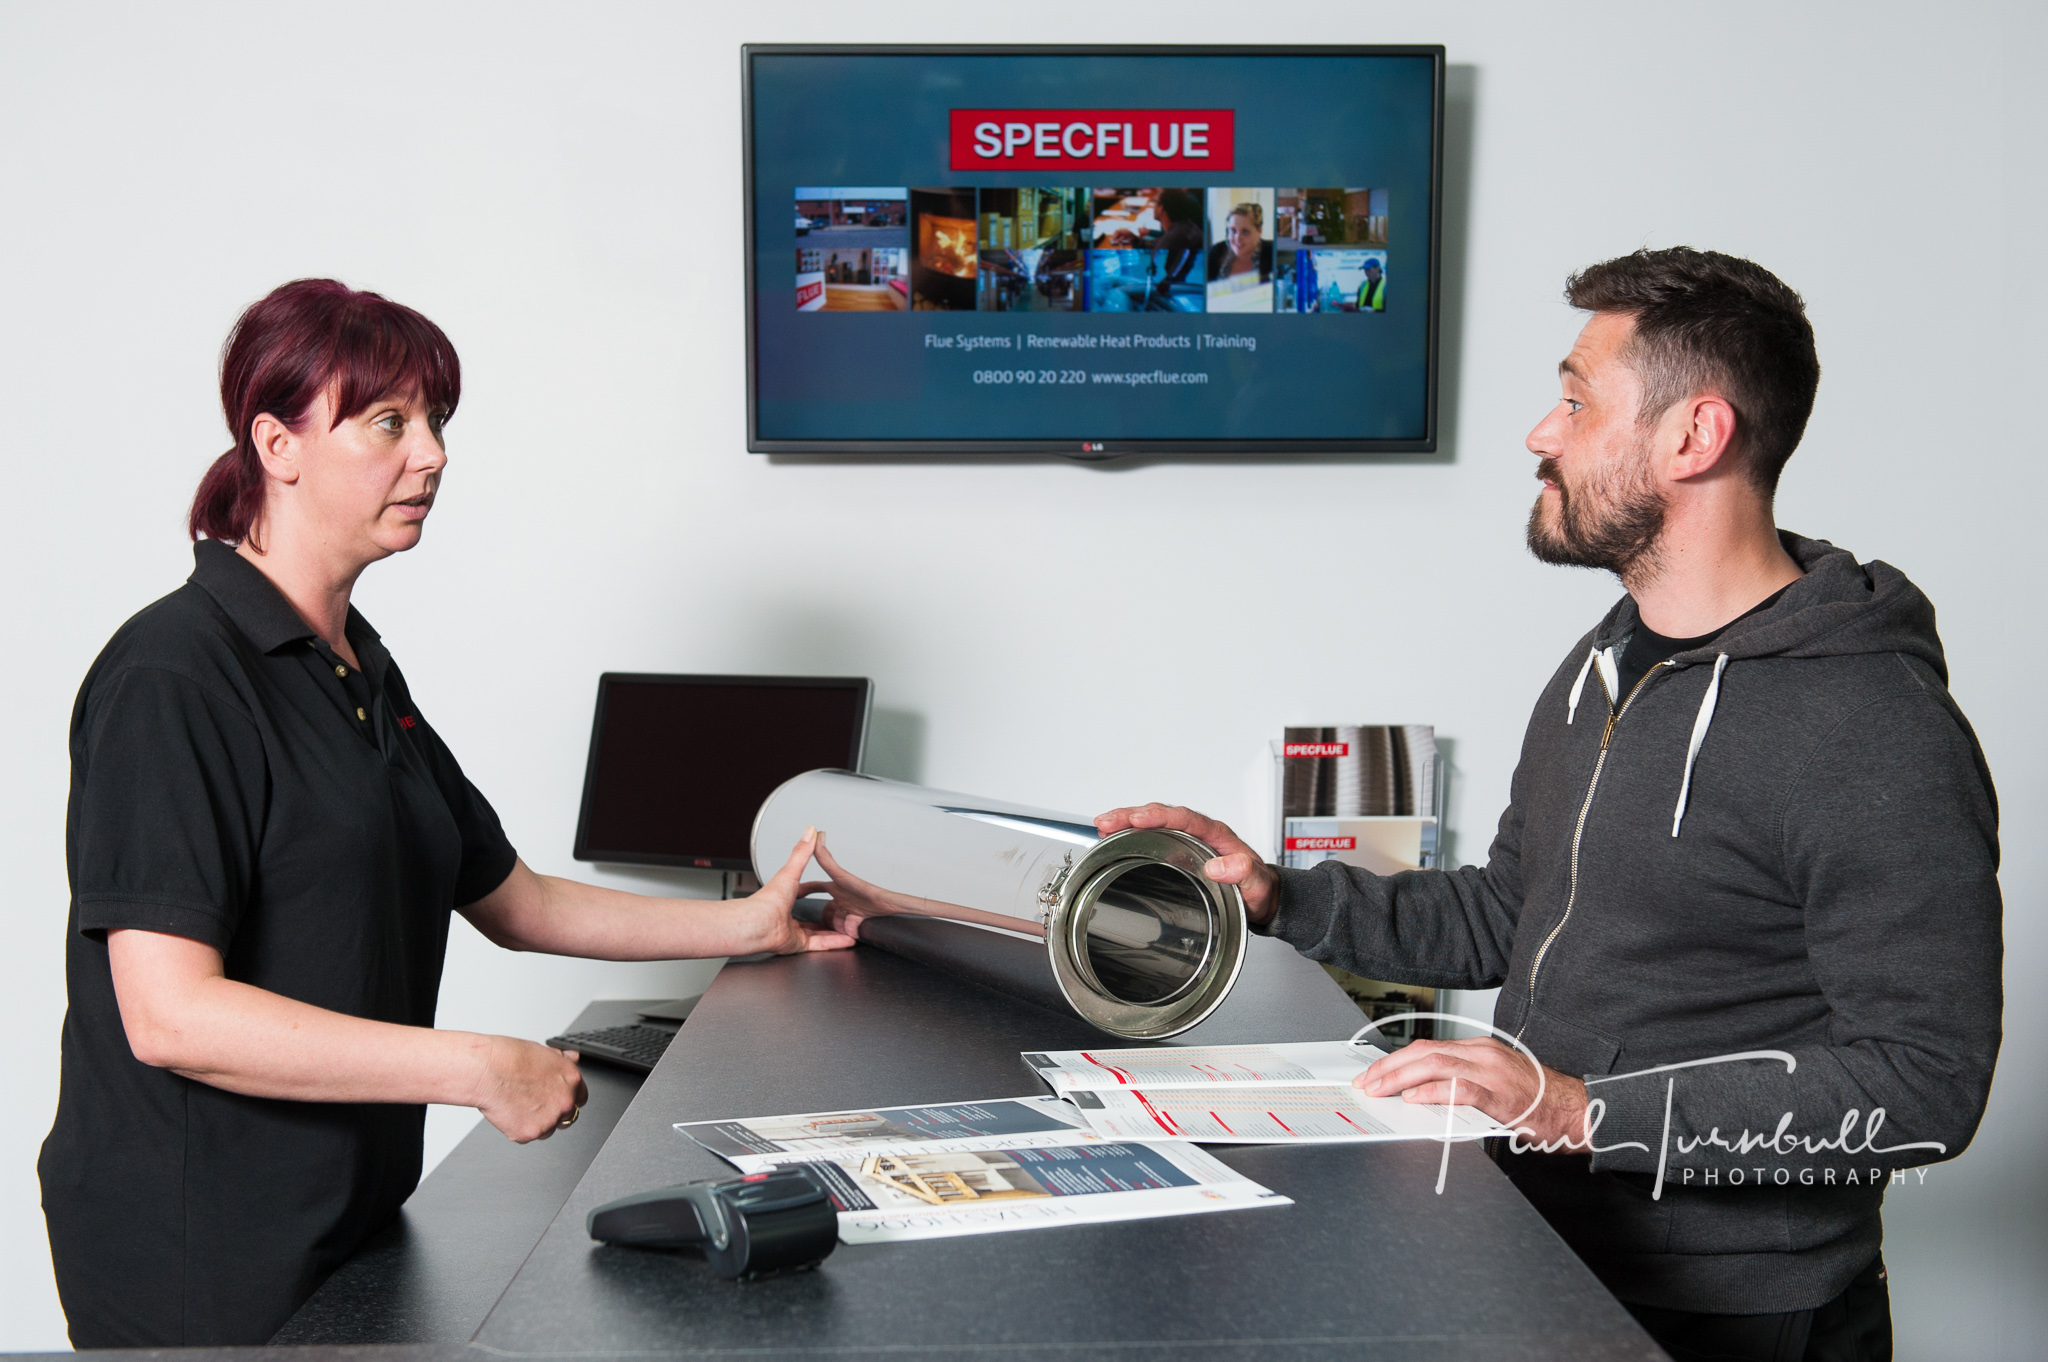 commercial-pr-photographer-leeds-yorkshire-specflue-010.jpg